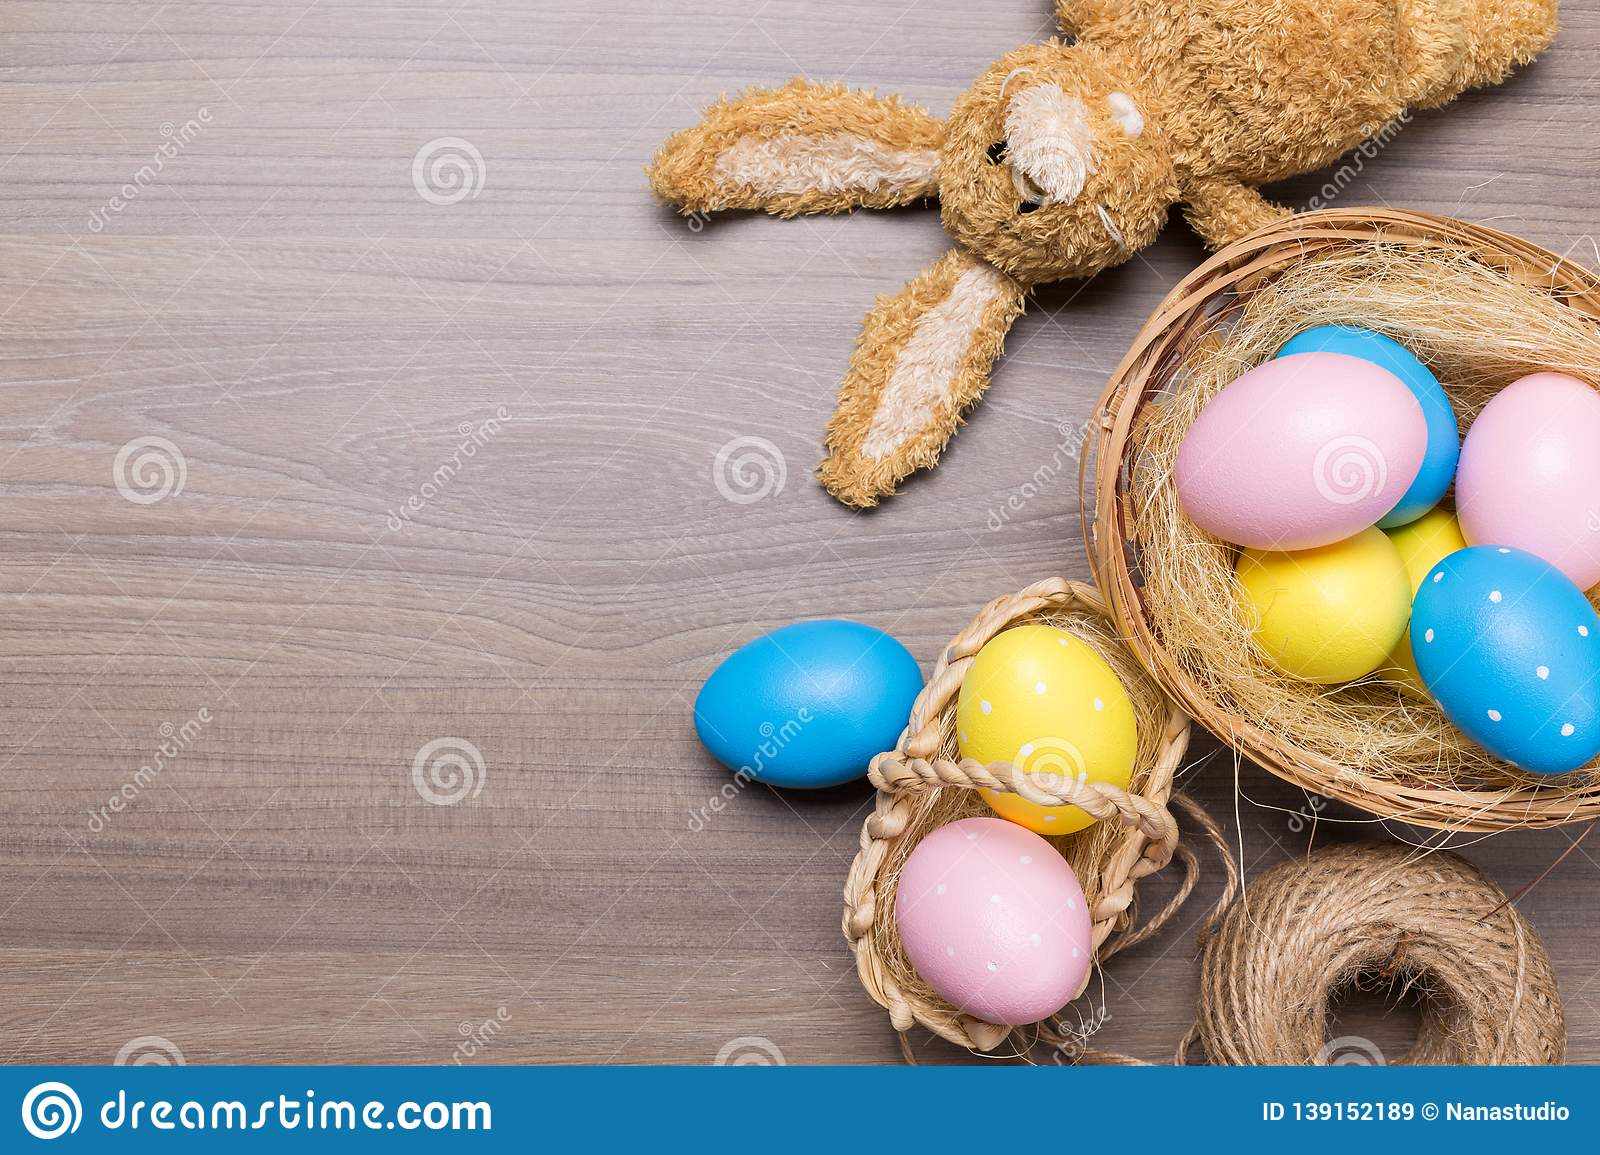 Easter eggs in the basket on wood background